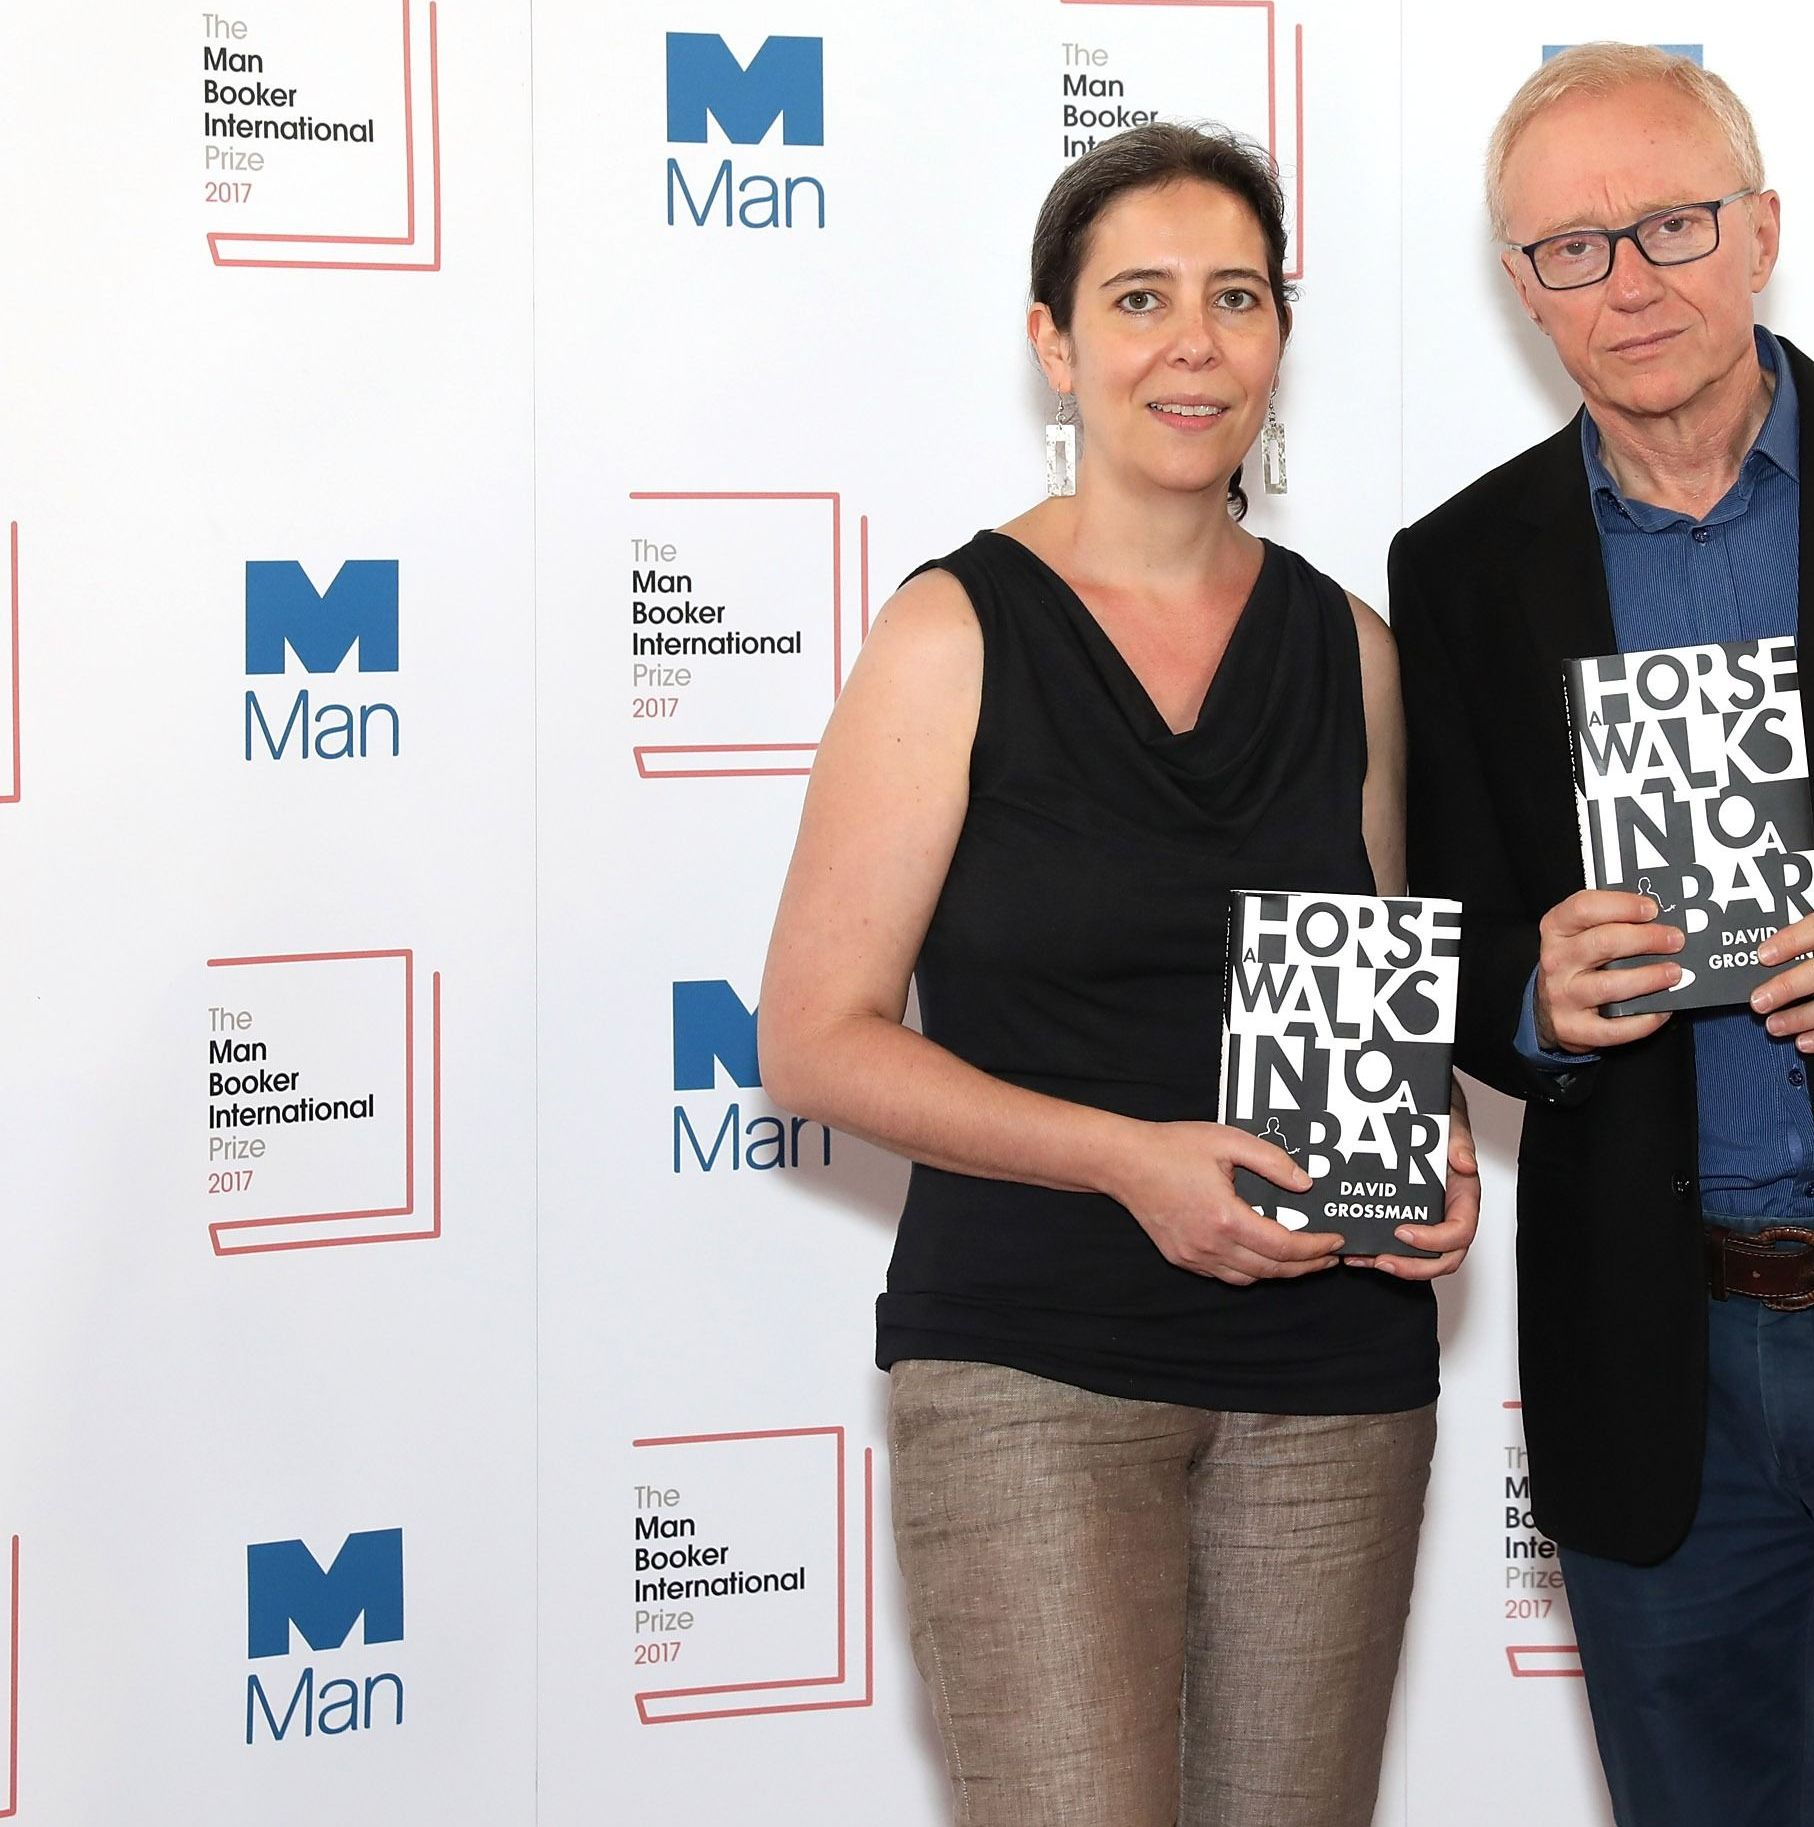 David Grossman wins Man Booker International Prize for Israel satire novel